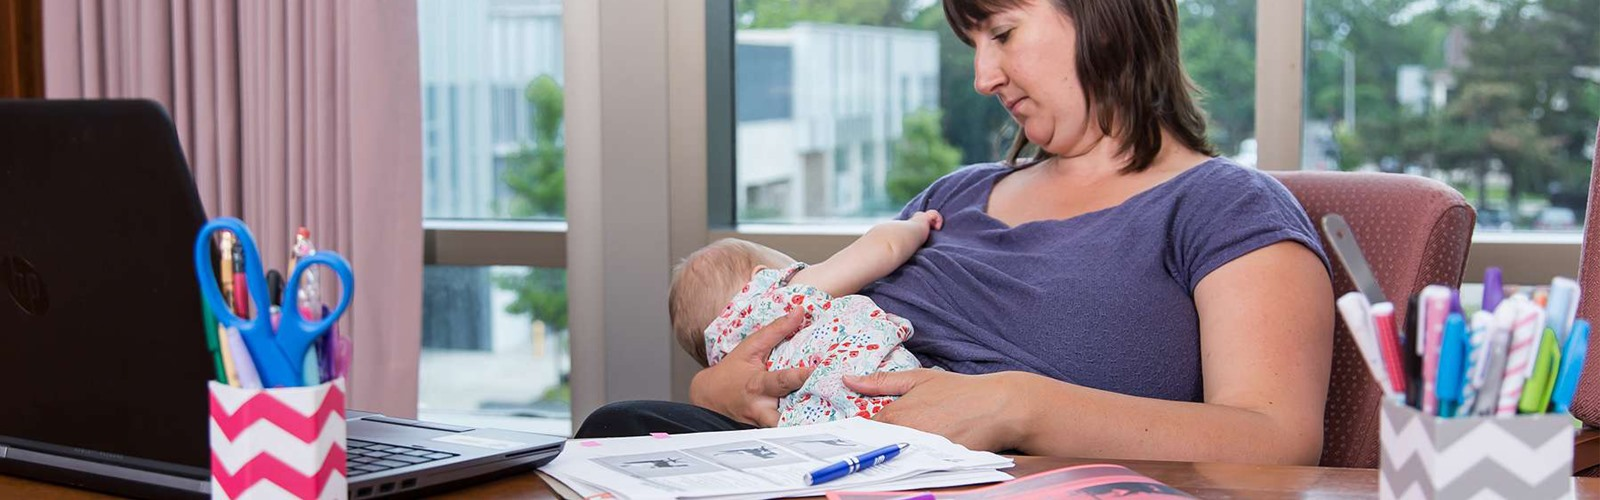 Woman breastfeeding baby at work